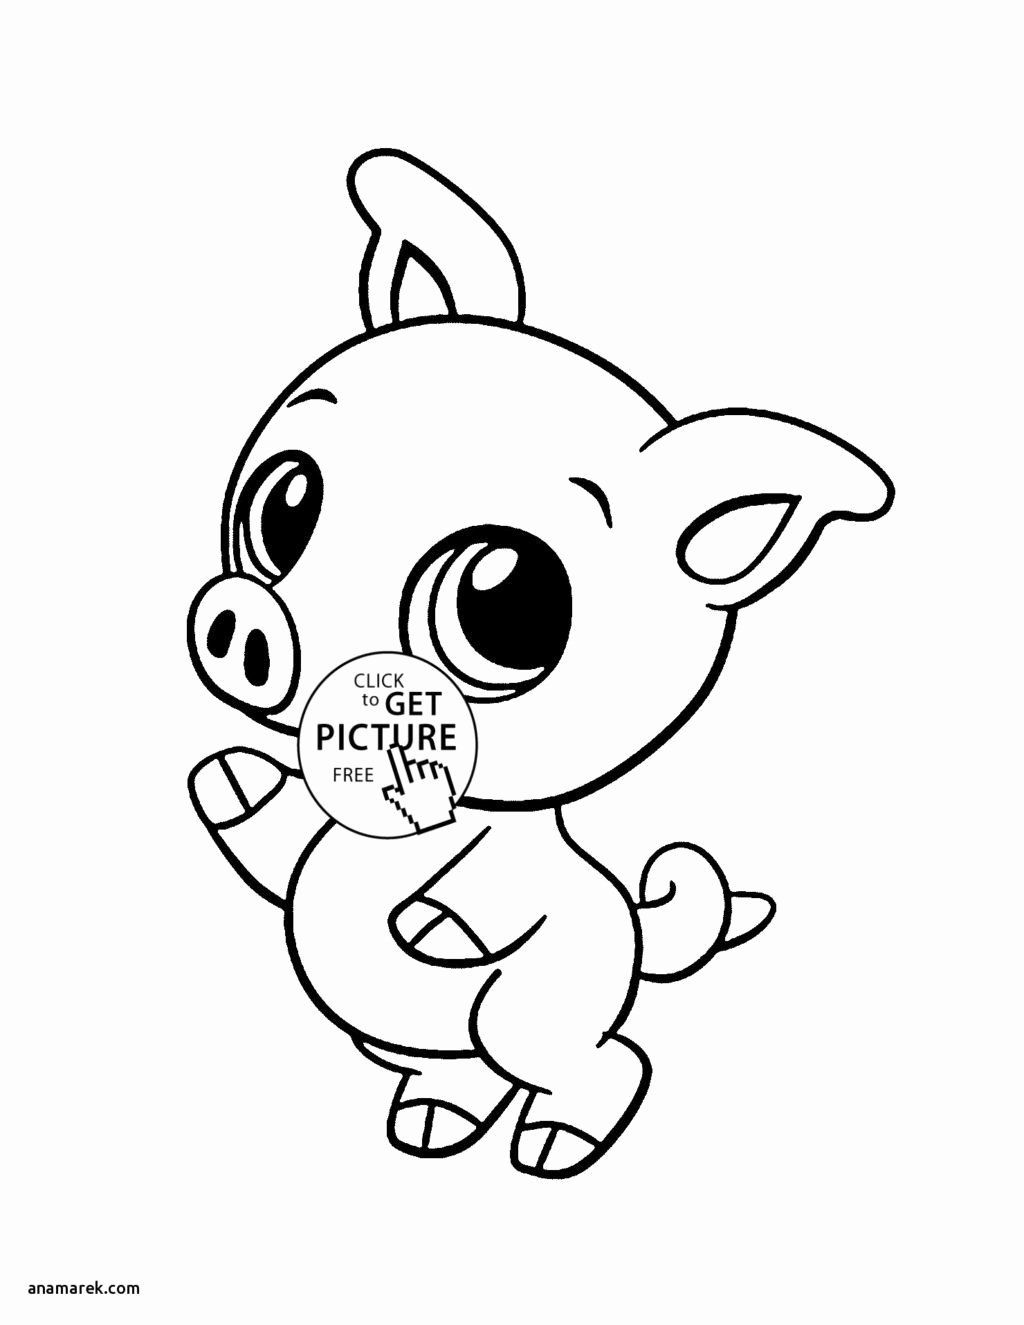 Coloring Book Zoo Animals In 2020 (With Images) Farm Animal